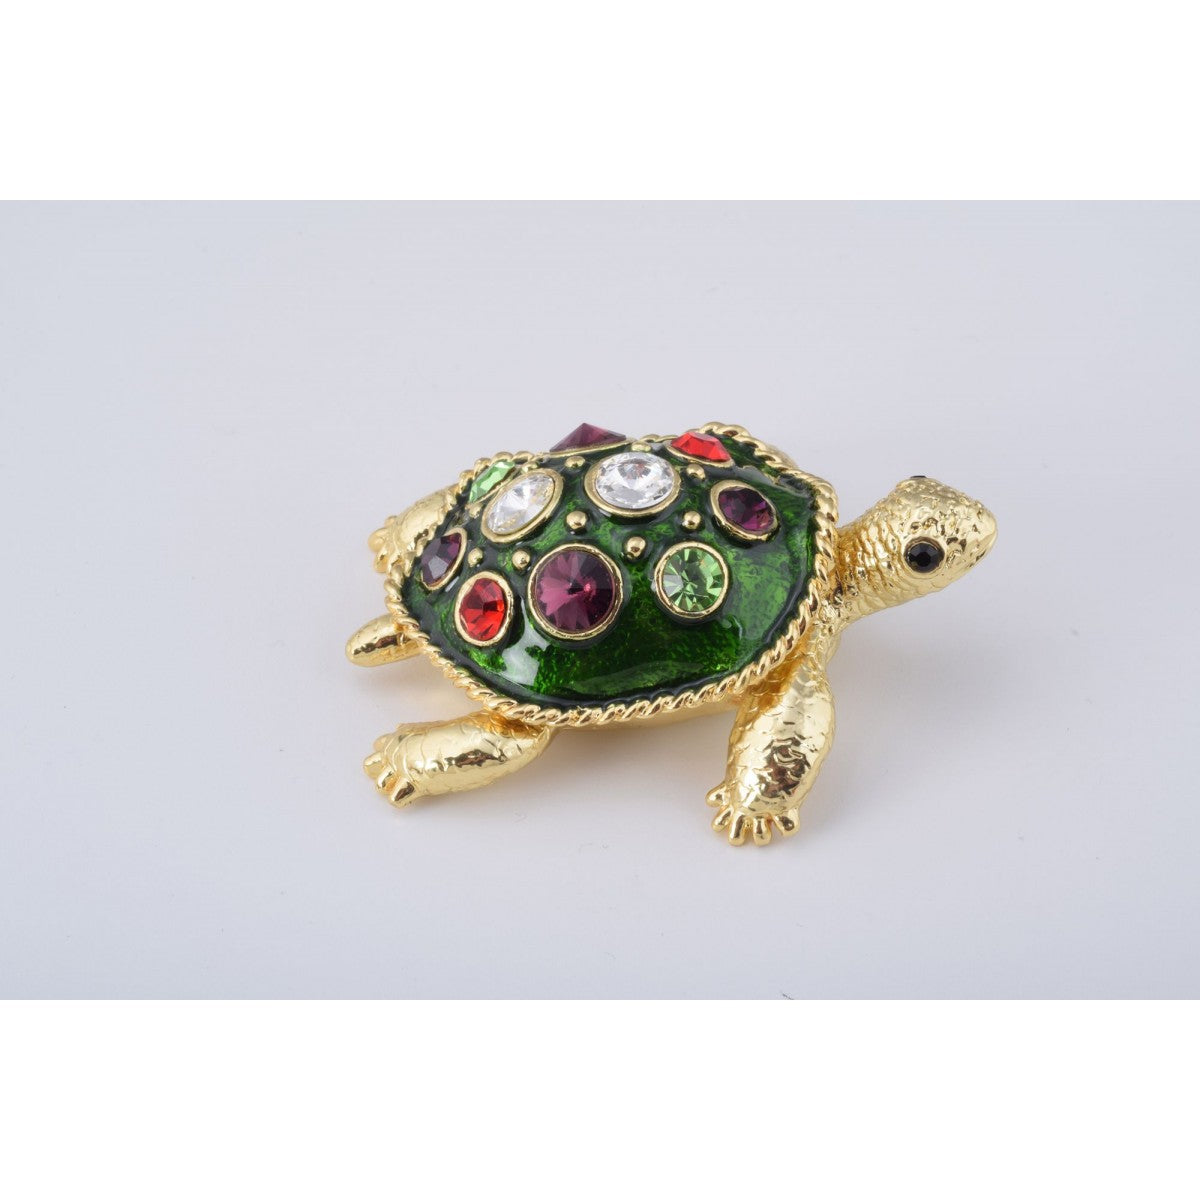 Sea Turtle Trinket Box by Keren Kopal